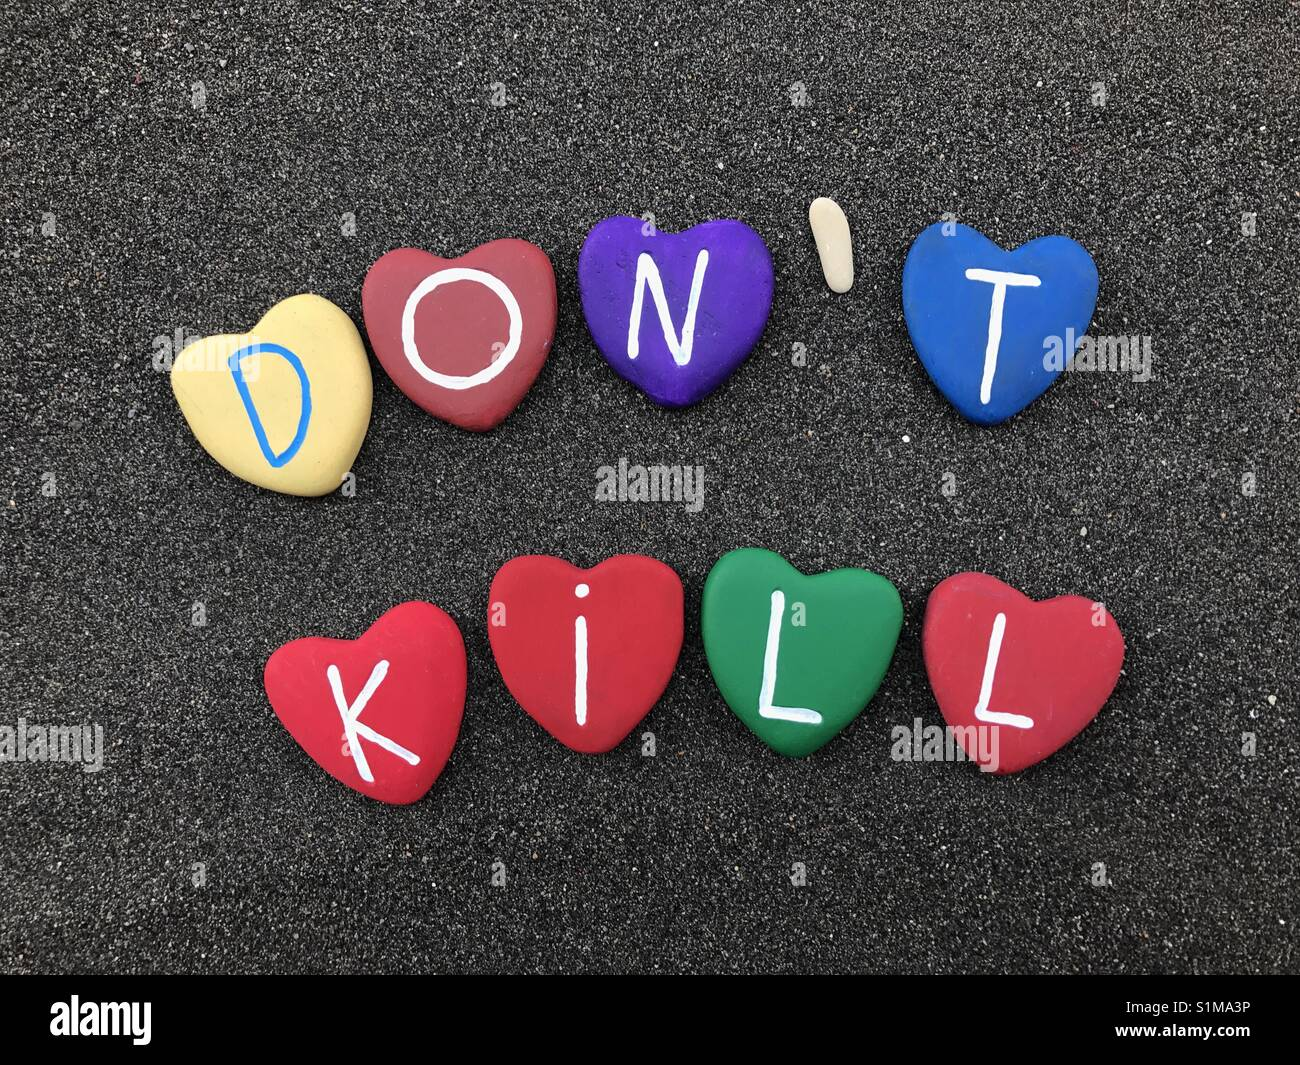 Don't kill - Stock Image